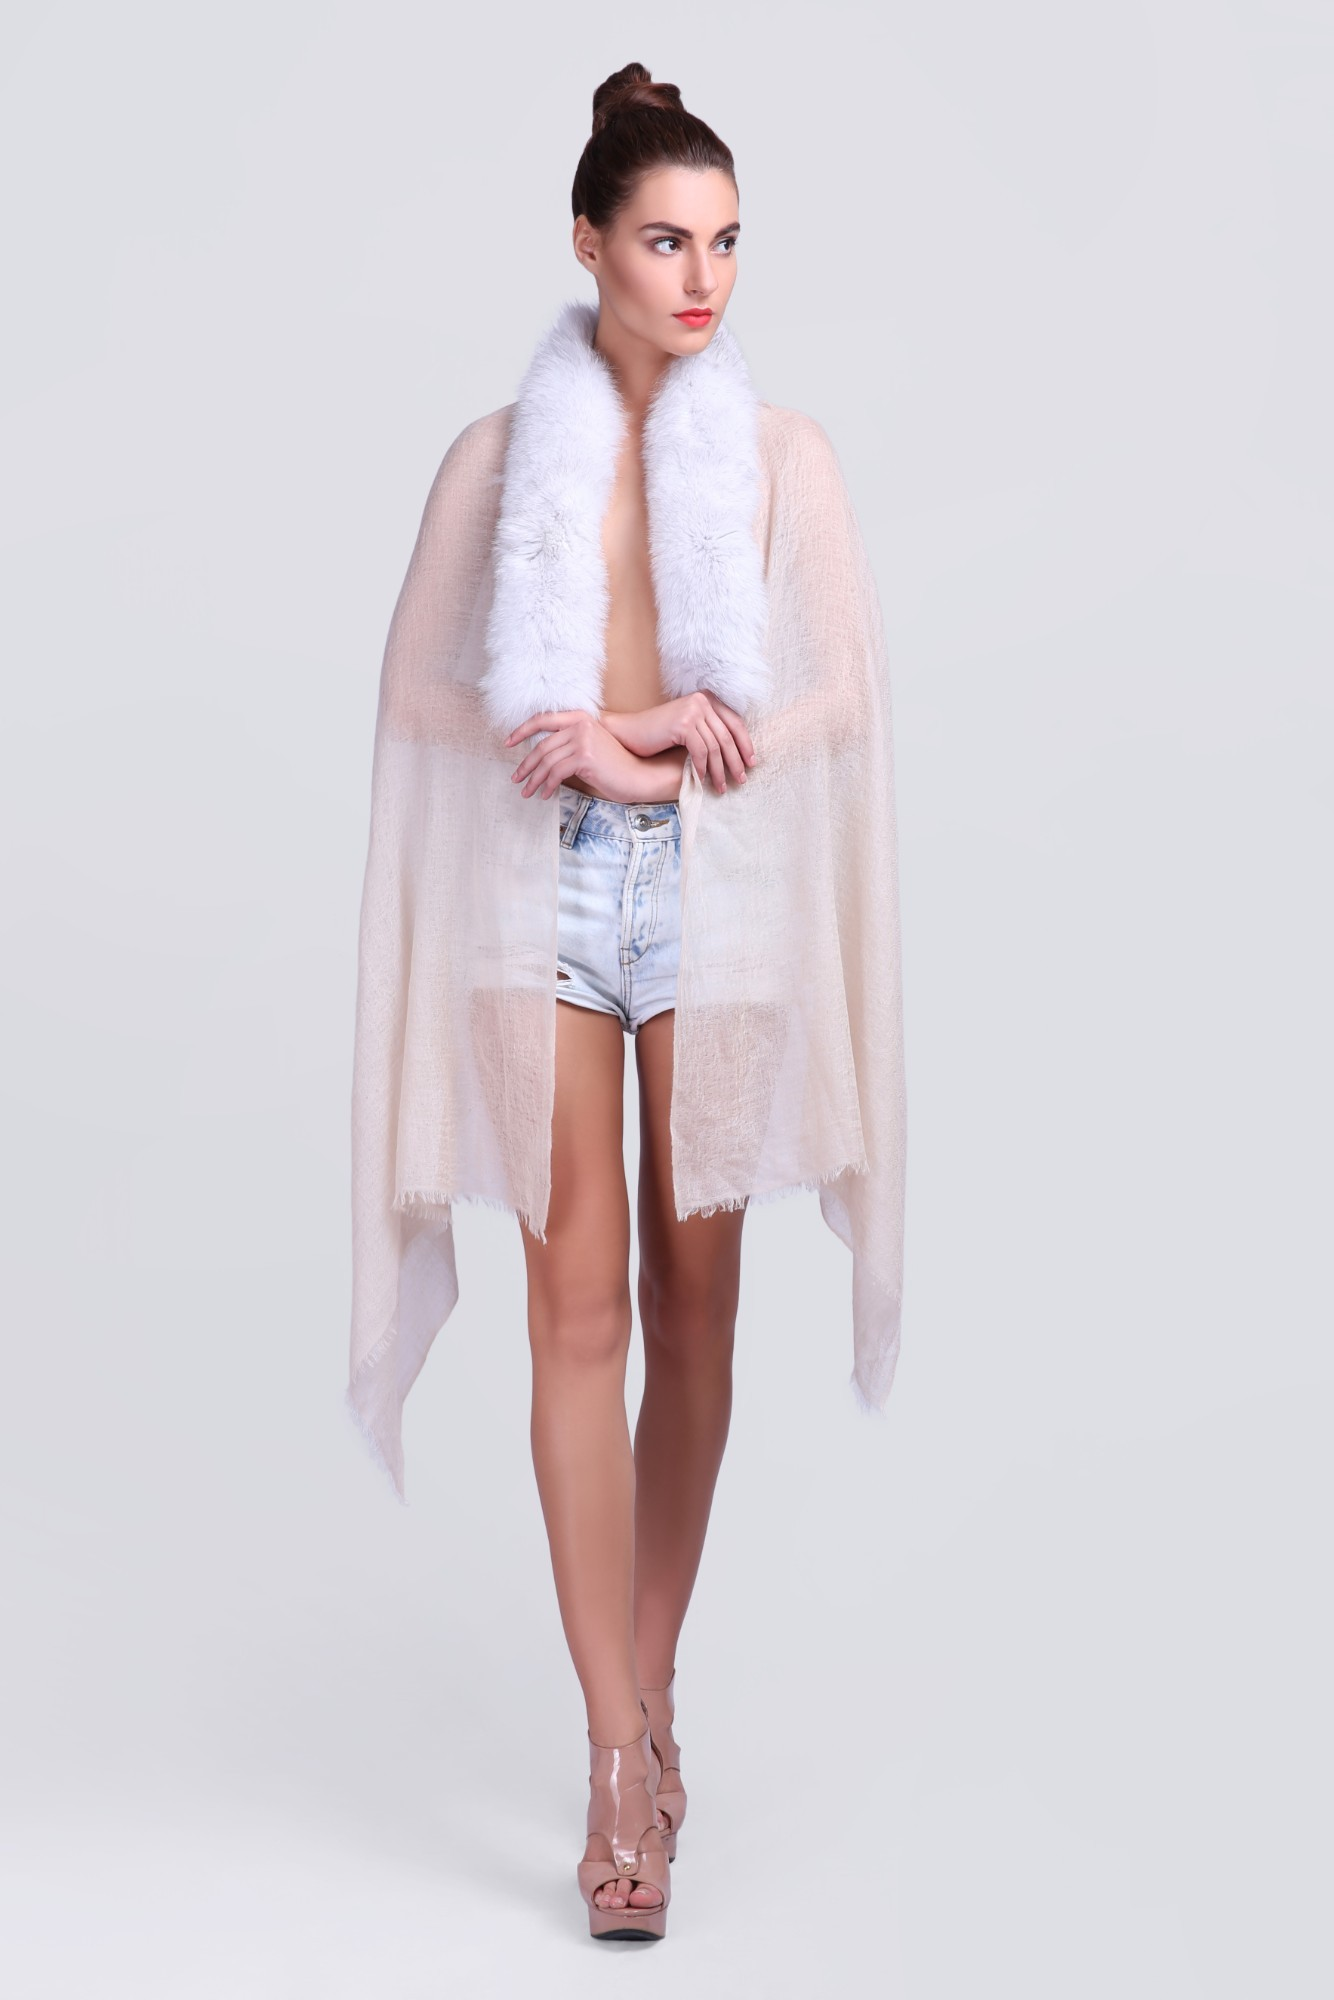 Cashmere Luxury Scarves with Fur - VS 12368A Beige Cashmere